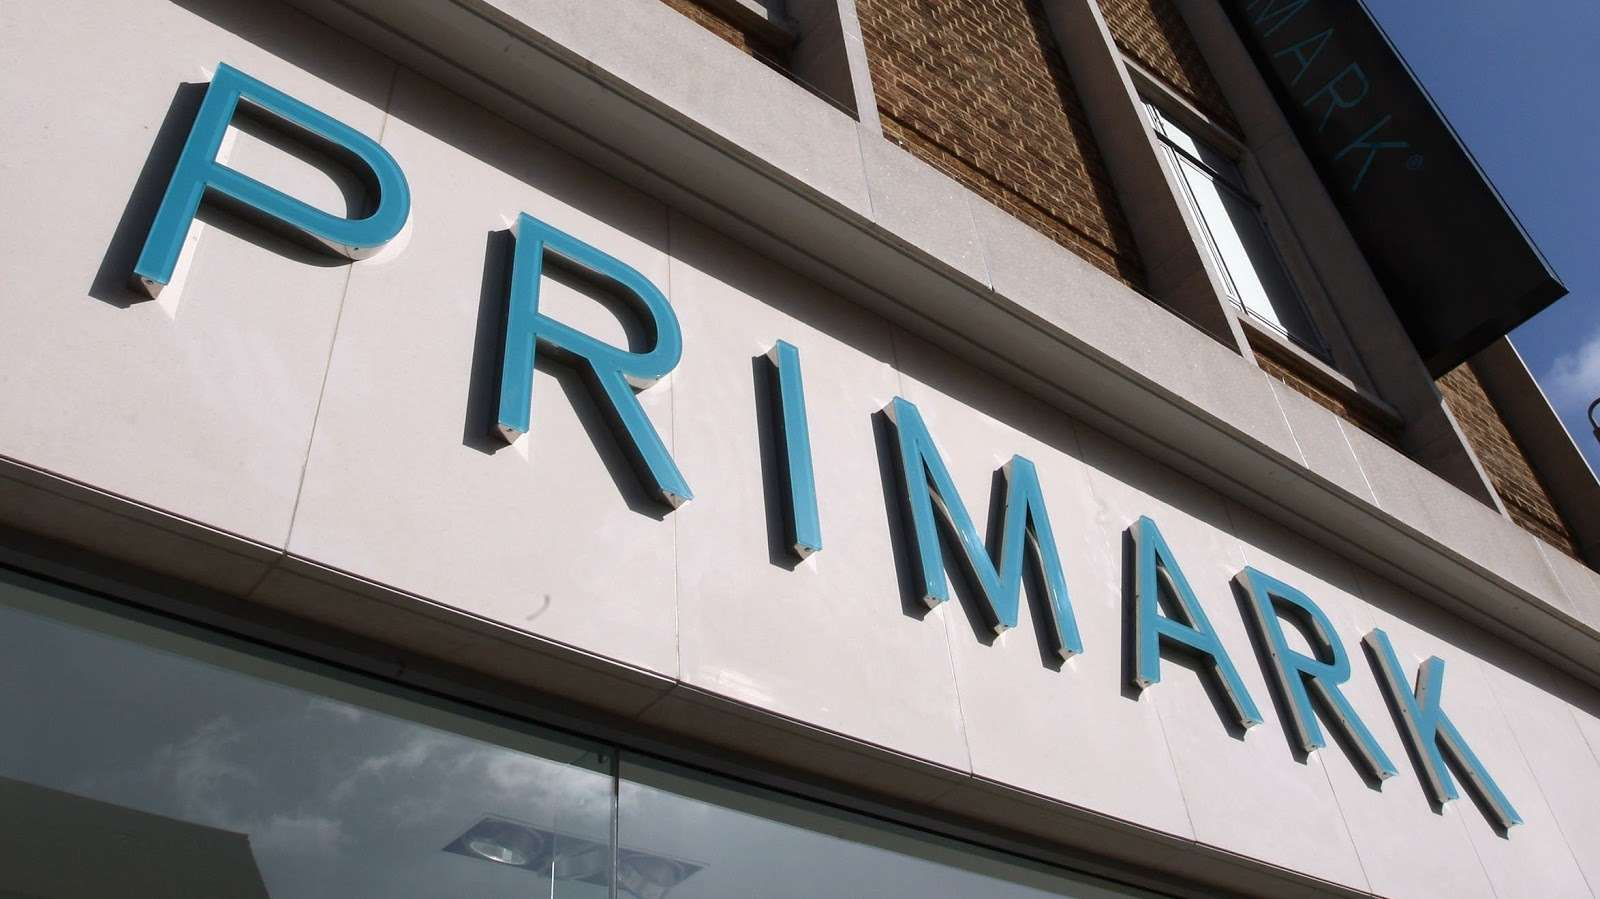 Kent has several Primark stores